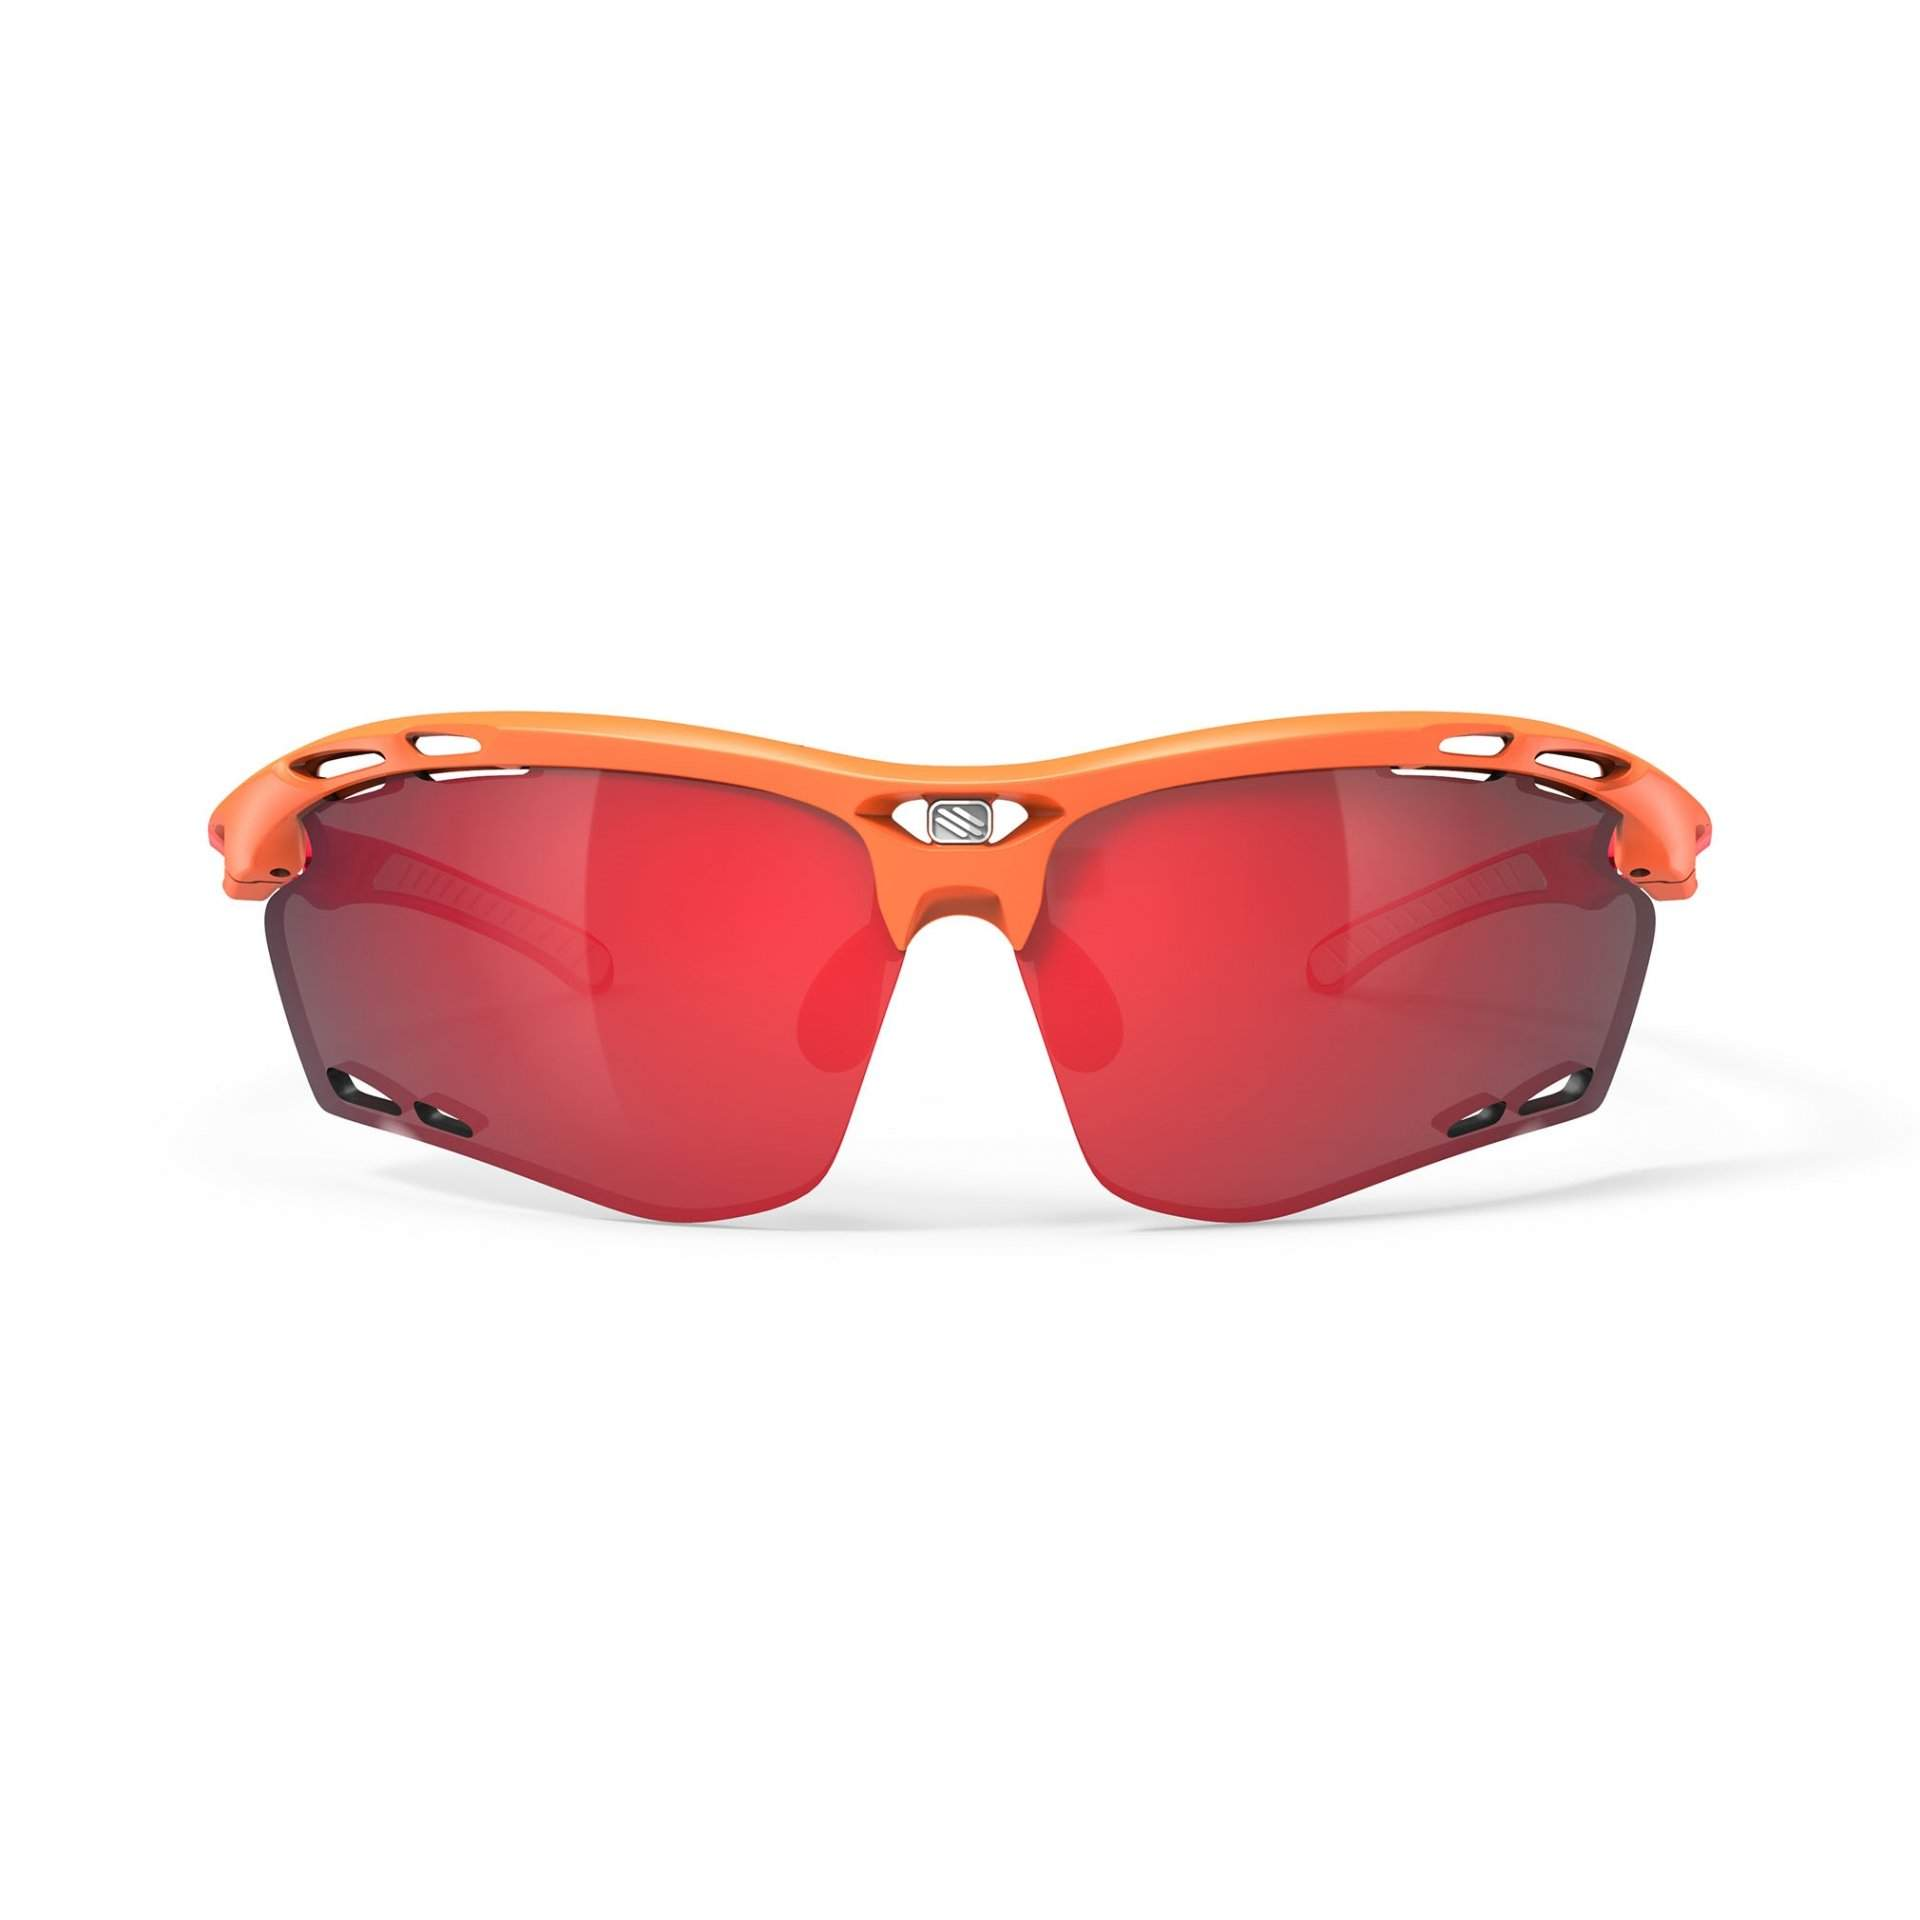 OKULARY RUDY PROJECT PROPULSE MANDARIN FADE CORAL|MULTILASER RED 2